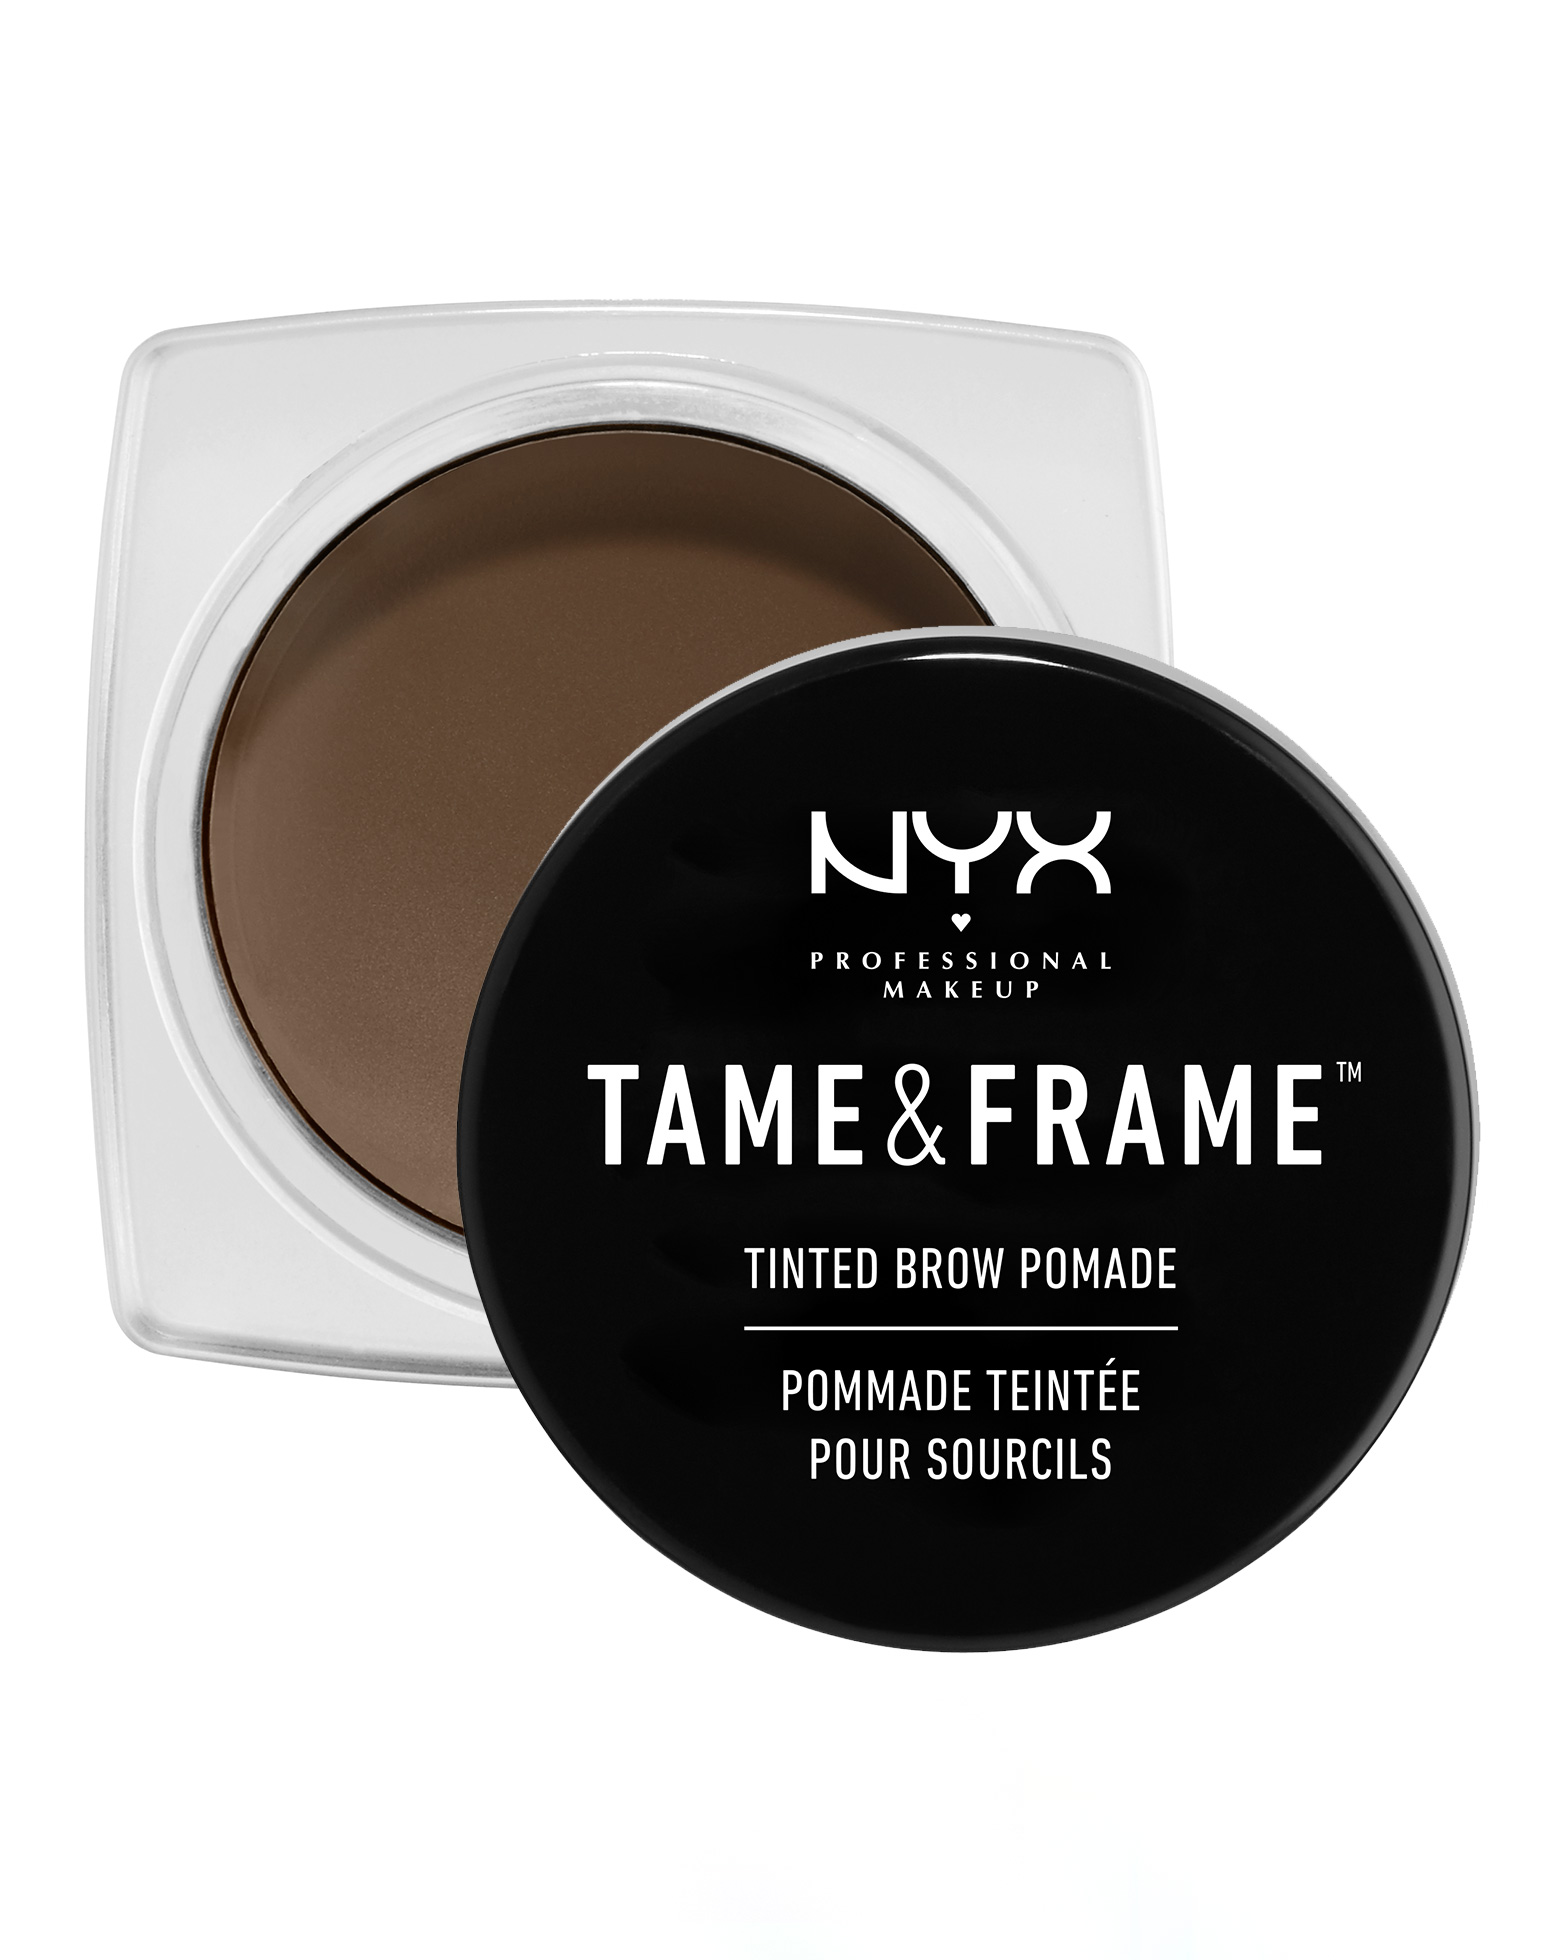 Tame Amp Frame Tinted Brow Pomade By Nyx Professional Makeup